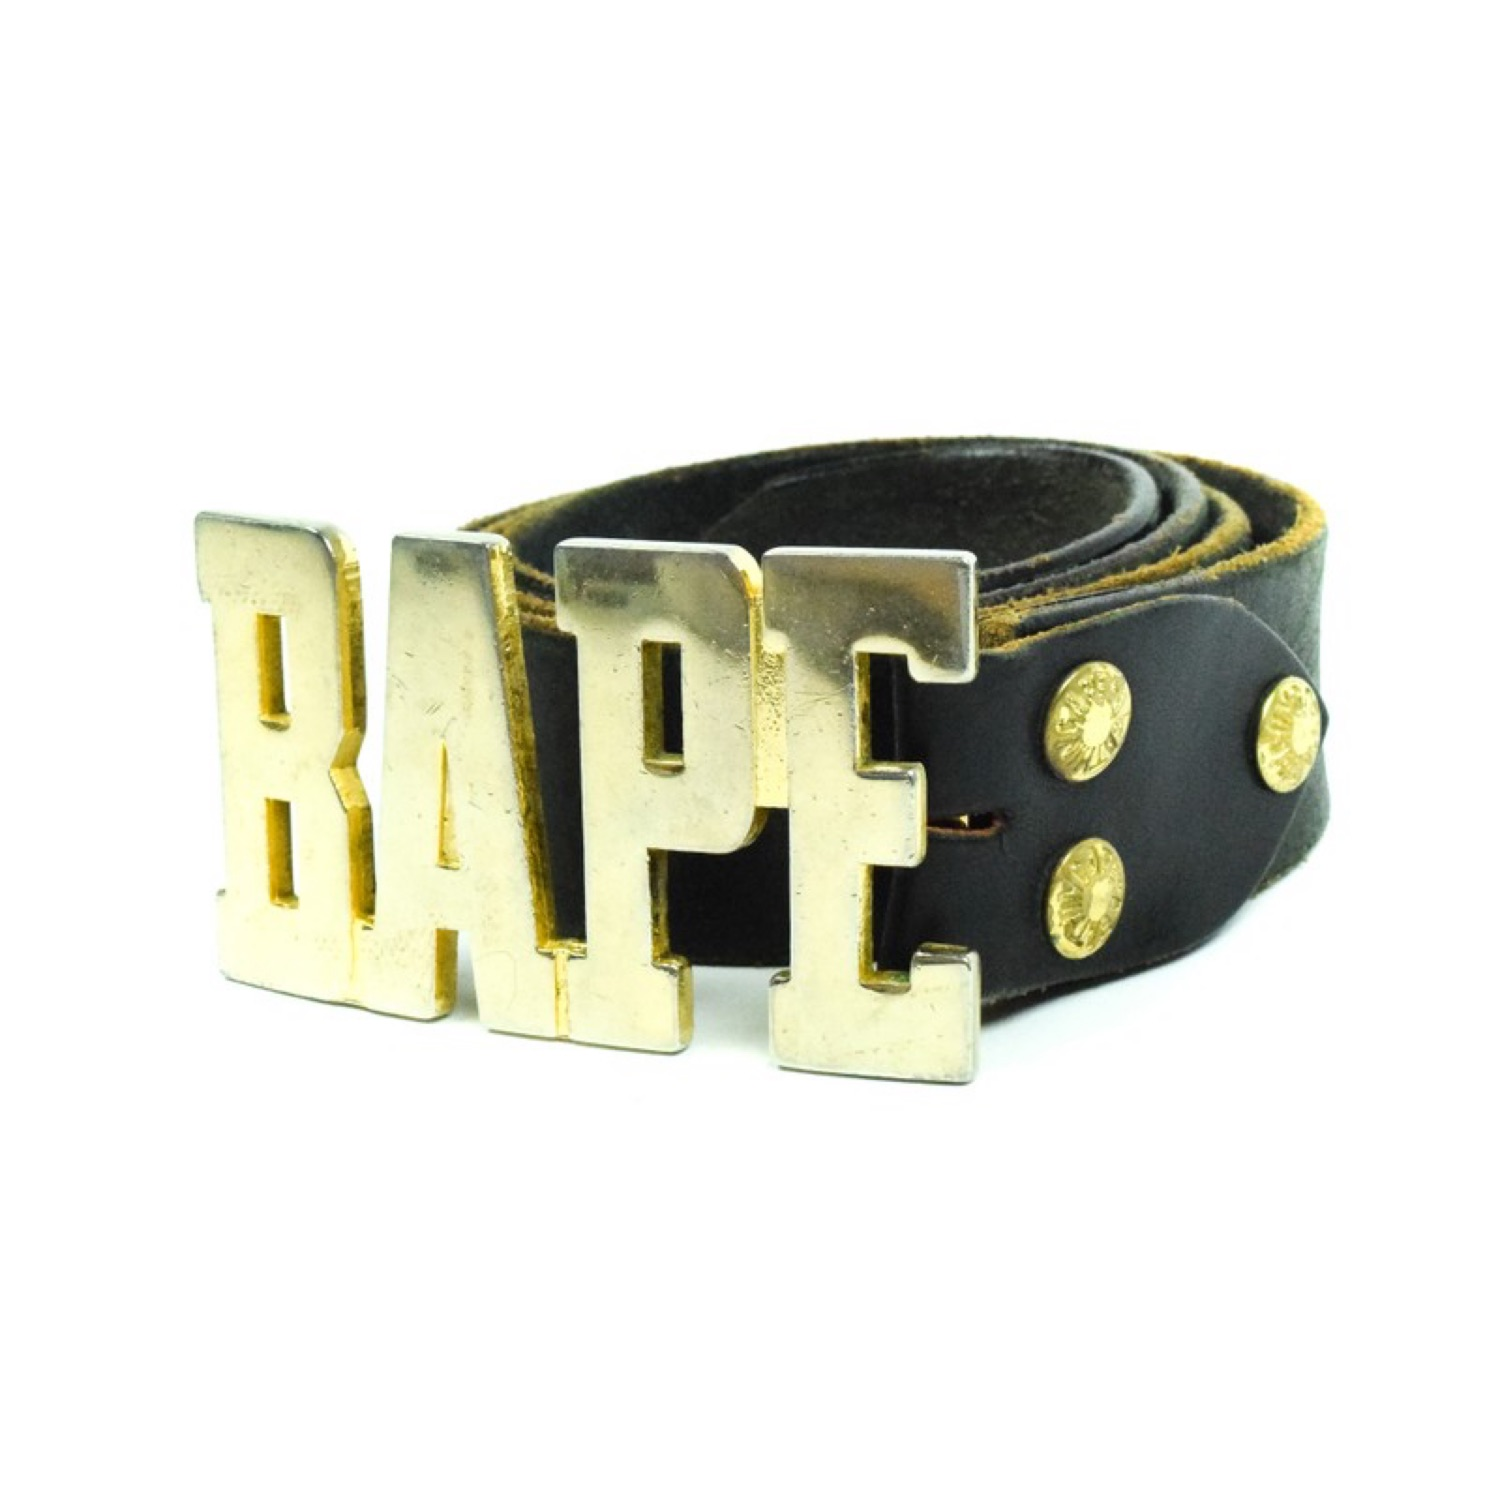 A Bathing Ape Logo Belt